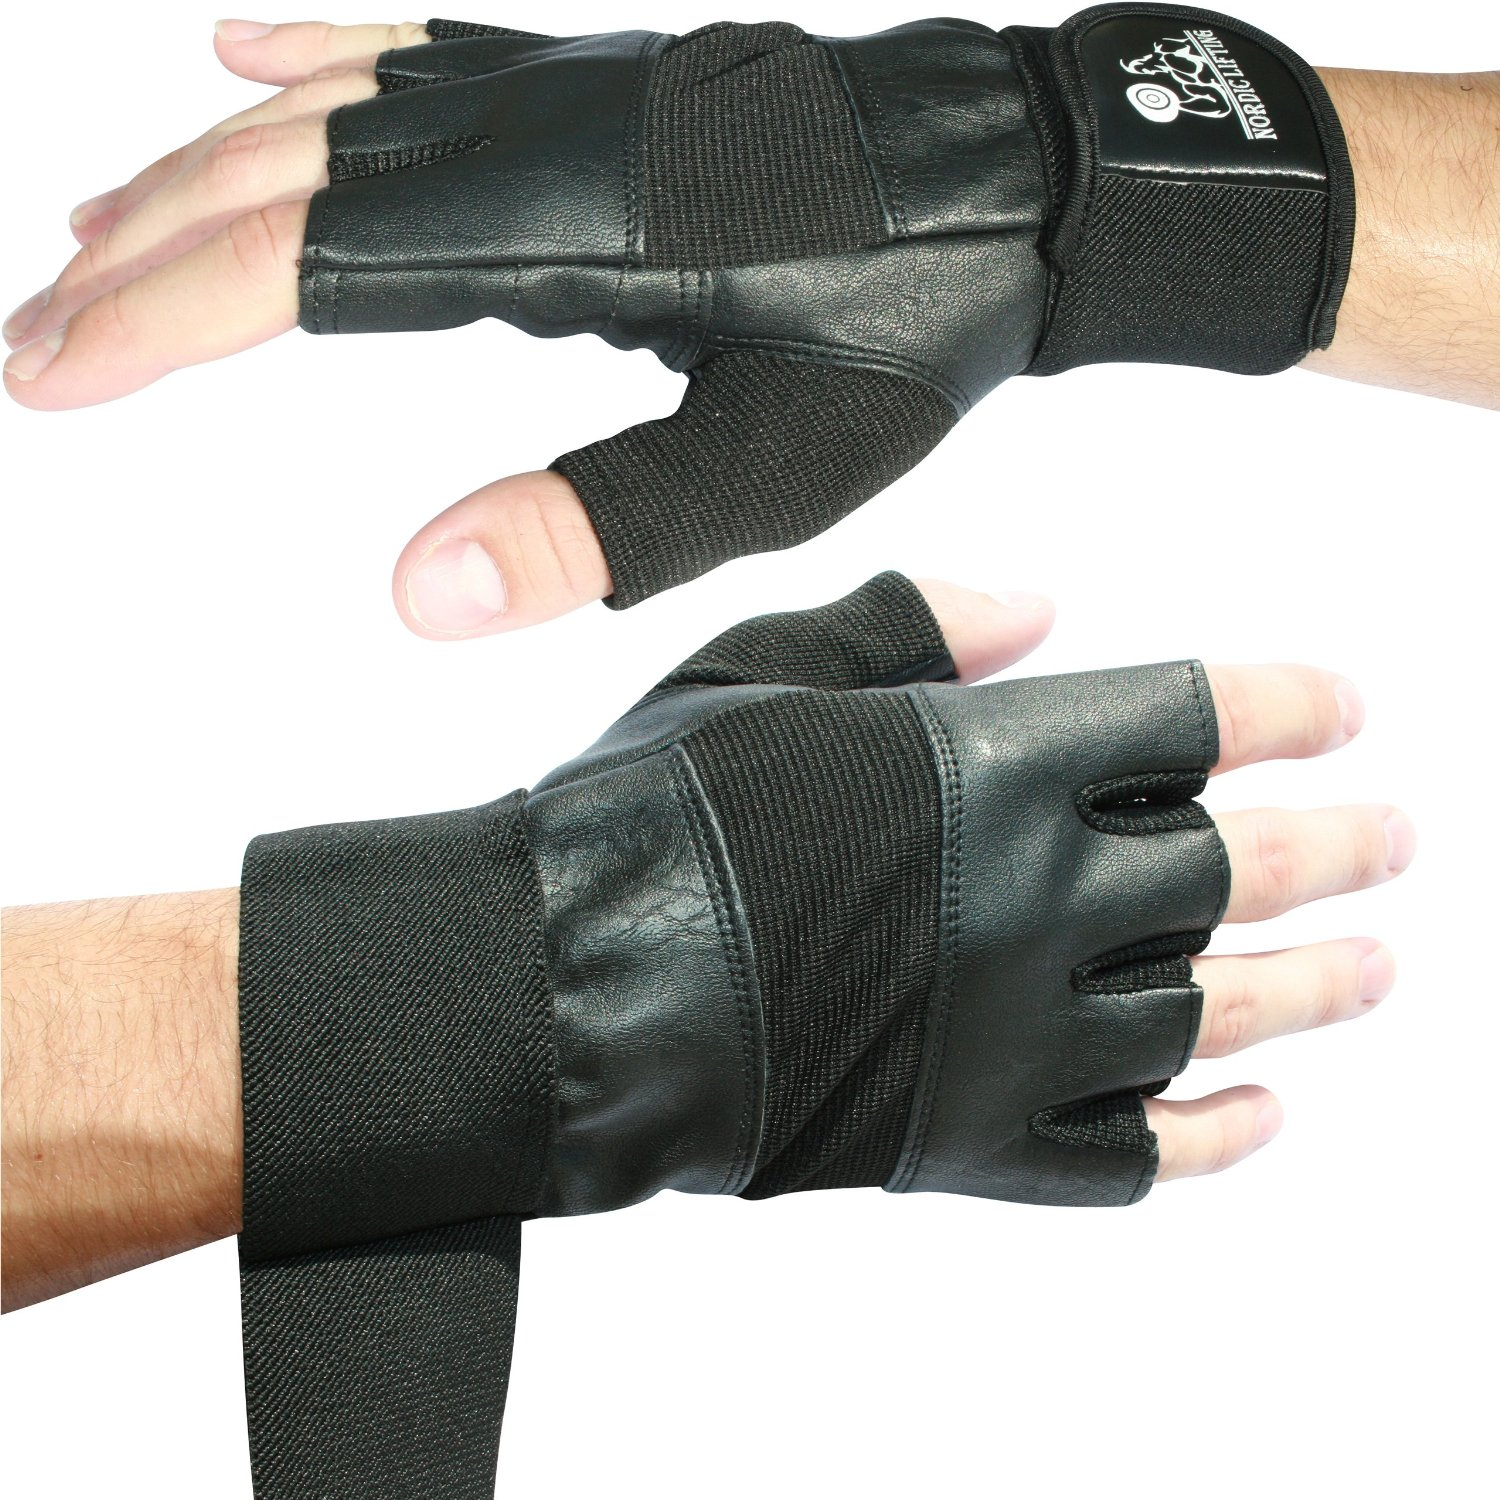 Nordic Lifting Unisex Weight Lifting Gloves with Wrist Support